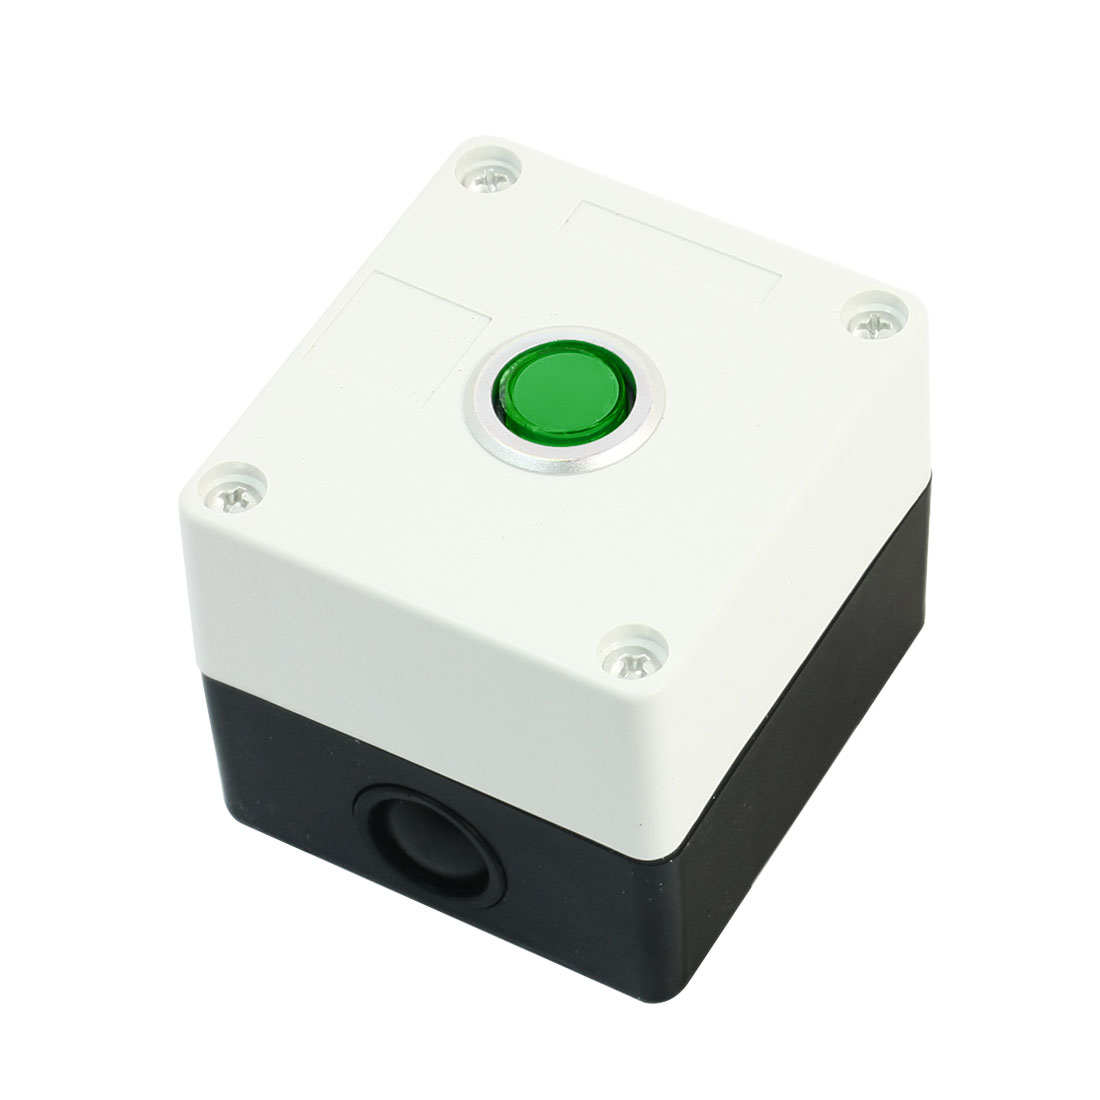 24V Green Light SPDT 1 NO 1 NC 5 Terminals Soldering Momentary Action Push Button Control Station Box